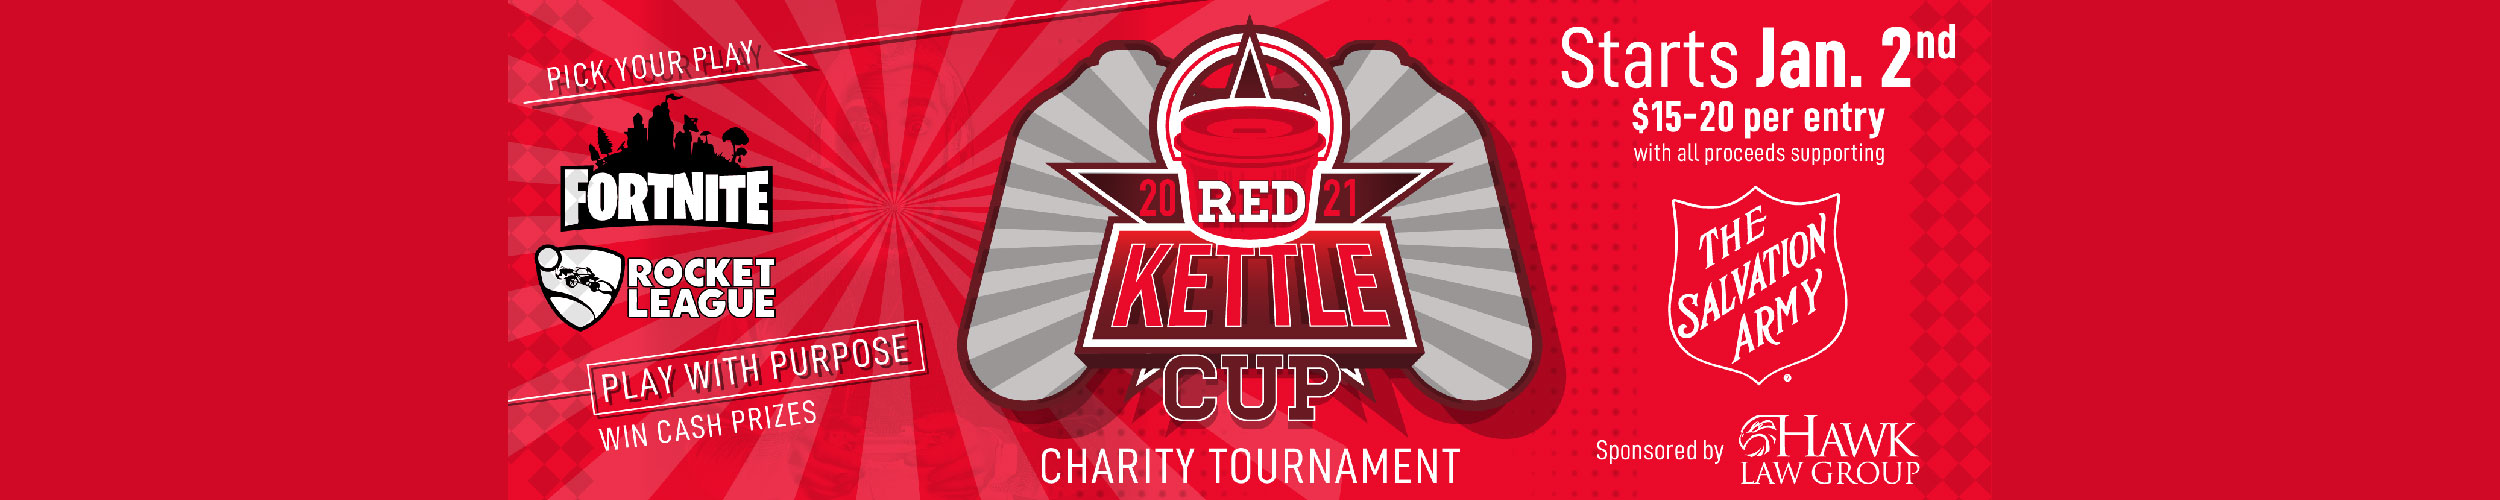 2021 Red Kettle Cup charity tournament